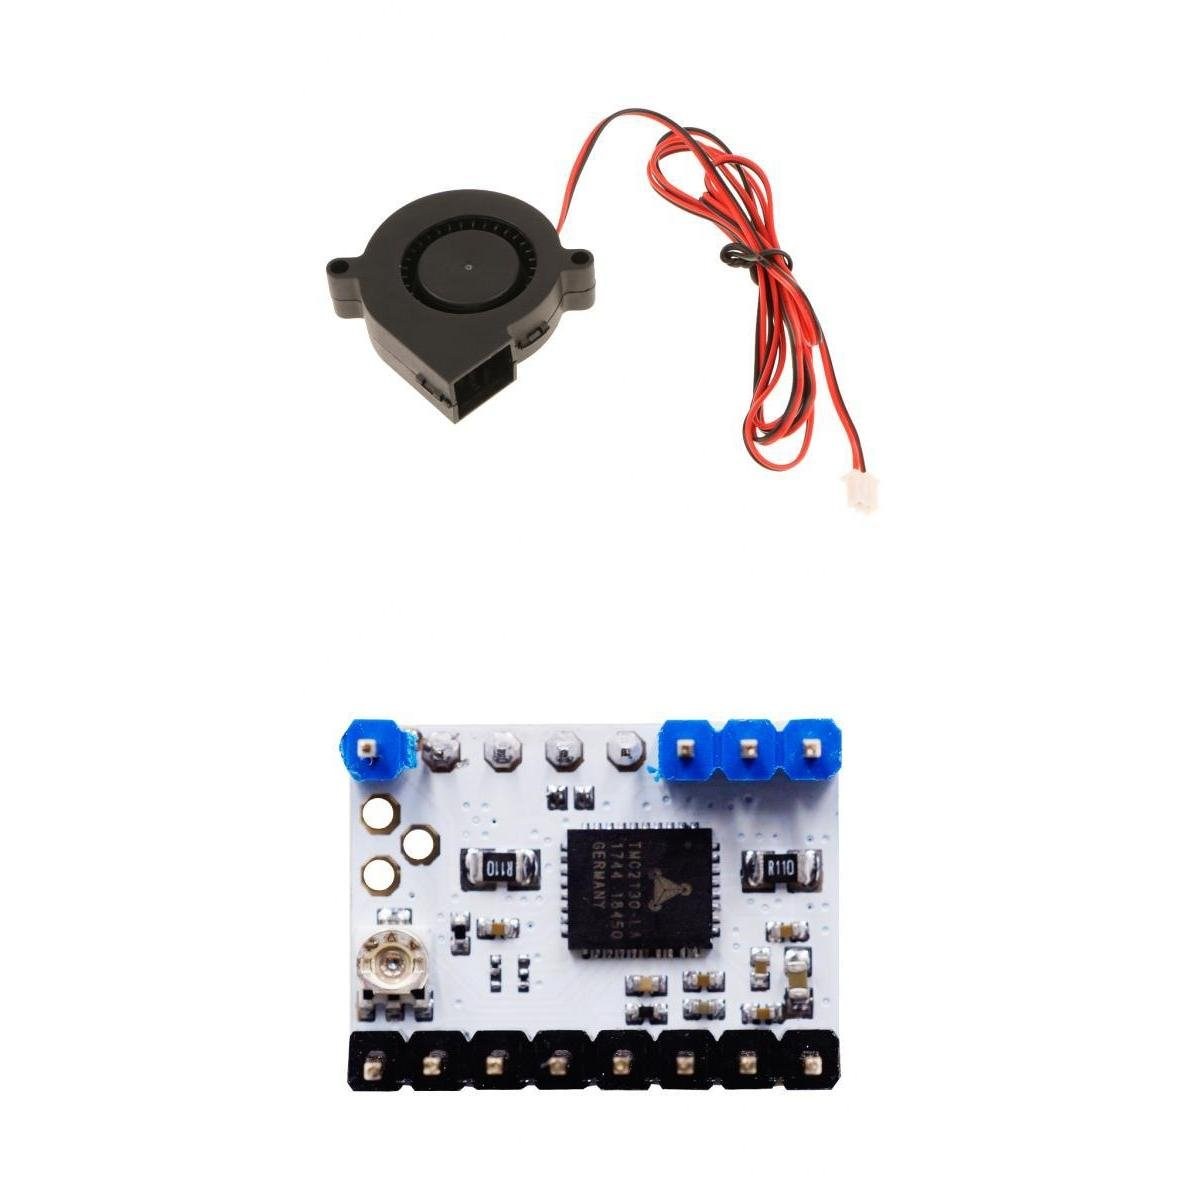 MagiDeal TMC2130 Stepper Motor Driver Module with Heat Sink&Mini Turbo Cooling Fan